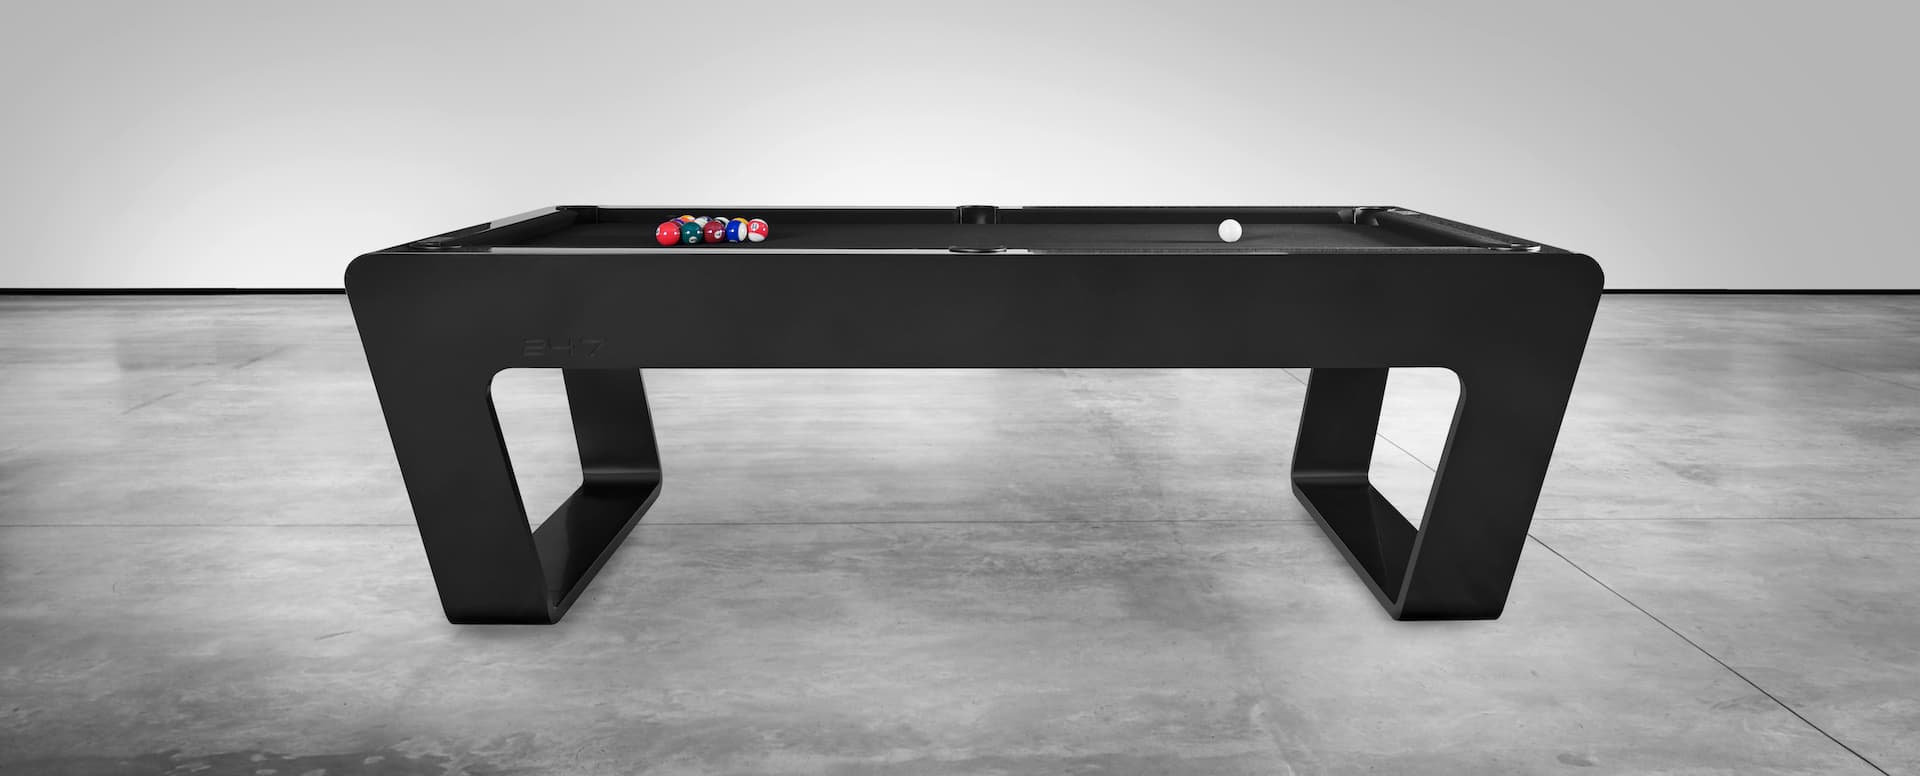 247 pool table with clean and dynamic lines